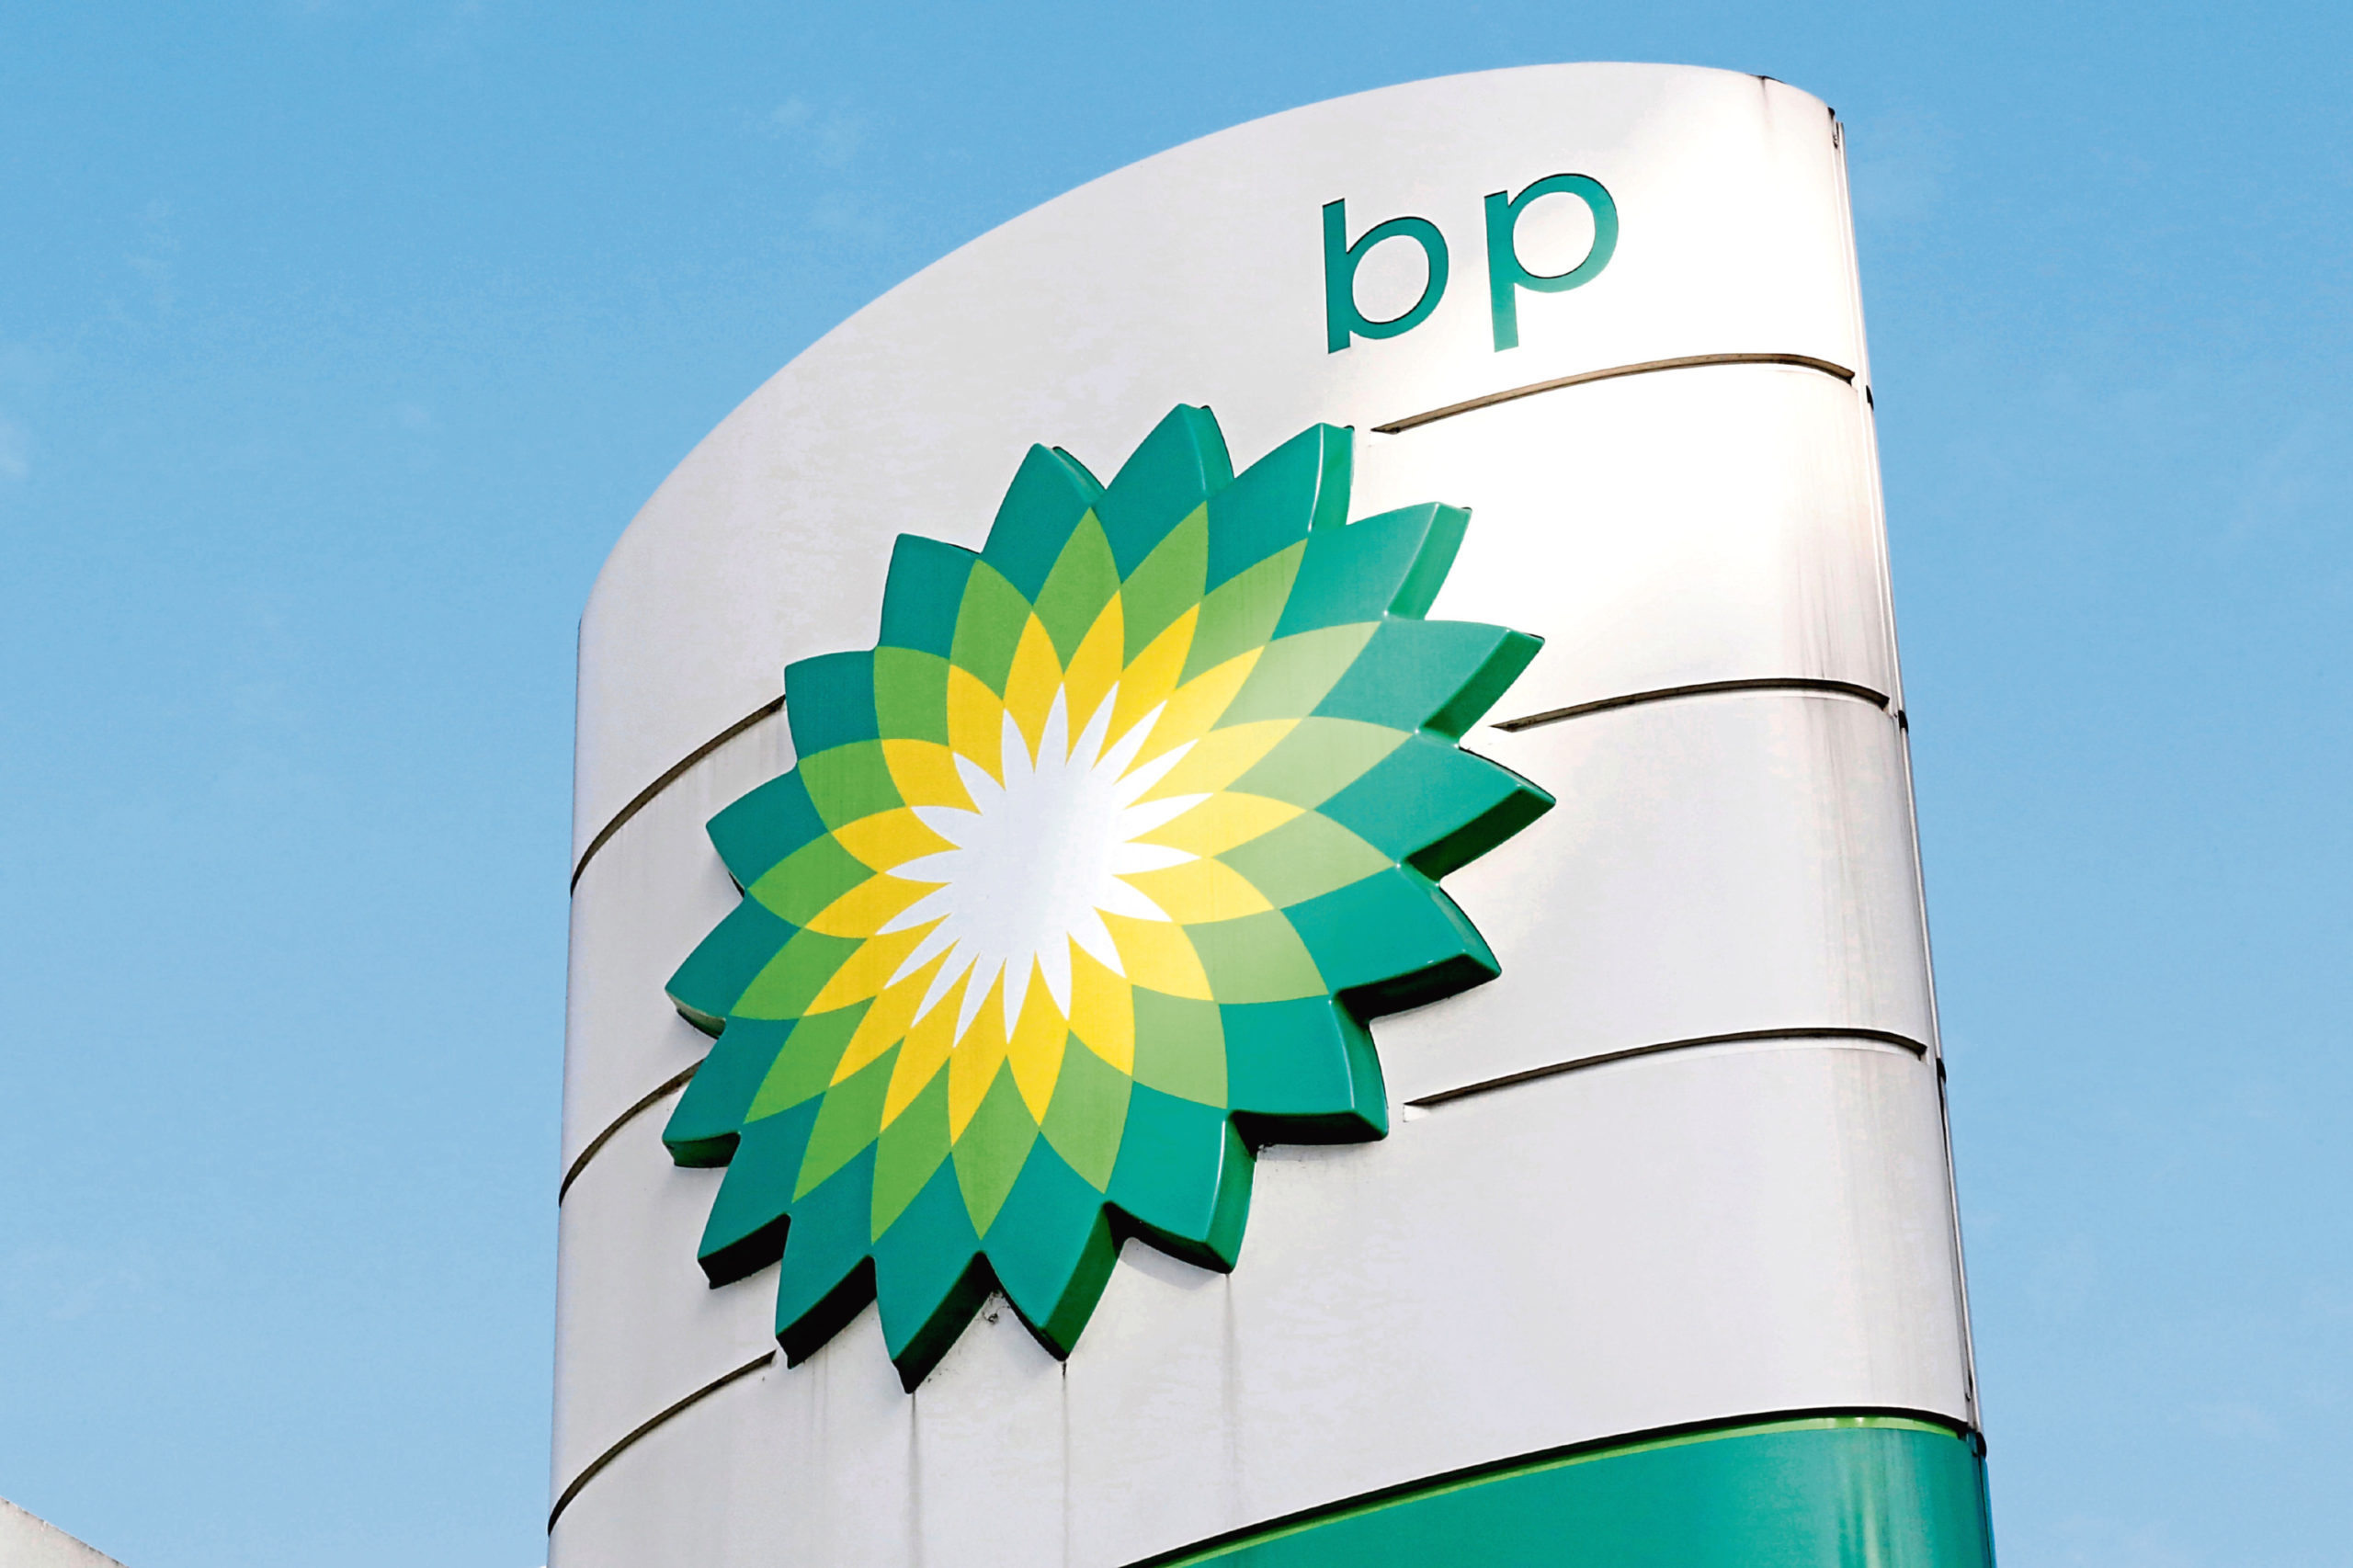 Mandatory Credit: Photo by Caroline Spiezio/AP/Shutterstock (10373133a) The oil producer BP company logo at a petrol station in London is shown. BP, a major player on Alaska's North Slope for decades, is selling all of its assets in the state, the company announced . Hilcorp Alaska is purchasing BP interests in both the Prudhoe Bay oil field and the trans-Alaska pipeline for $5.6 billion, BP announced in a release BP Alaska, London, United Kingdom - 01 Aug 2017